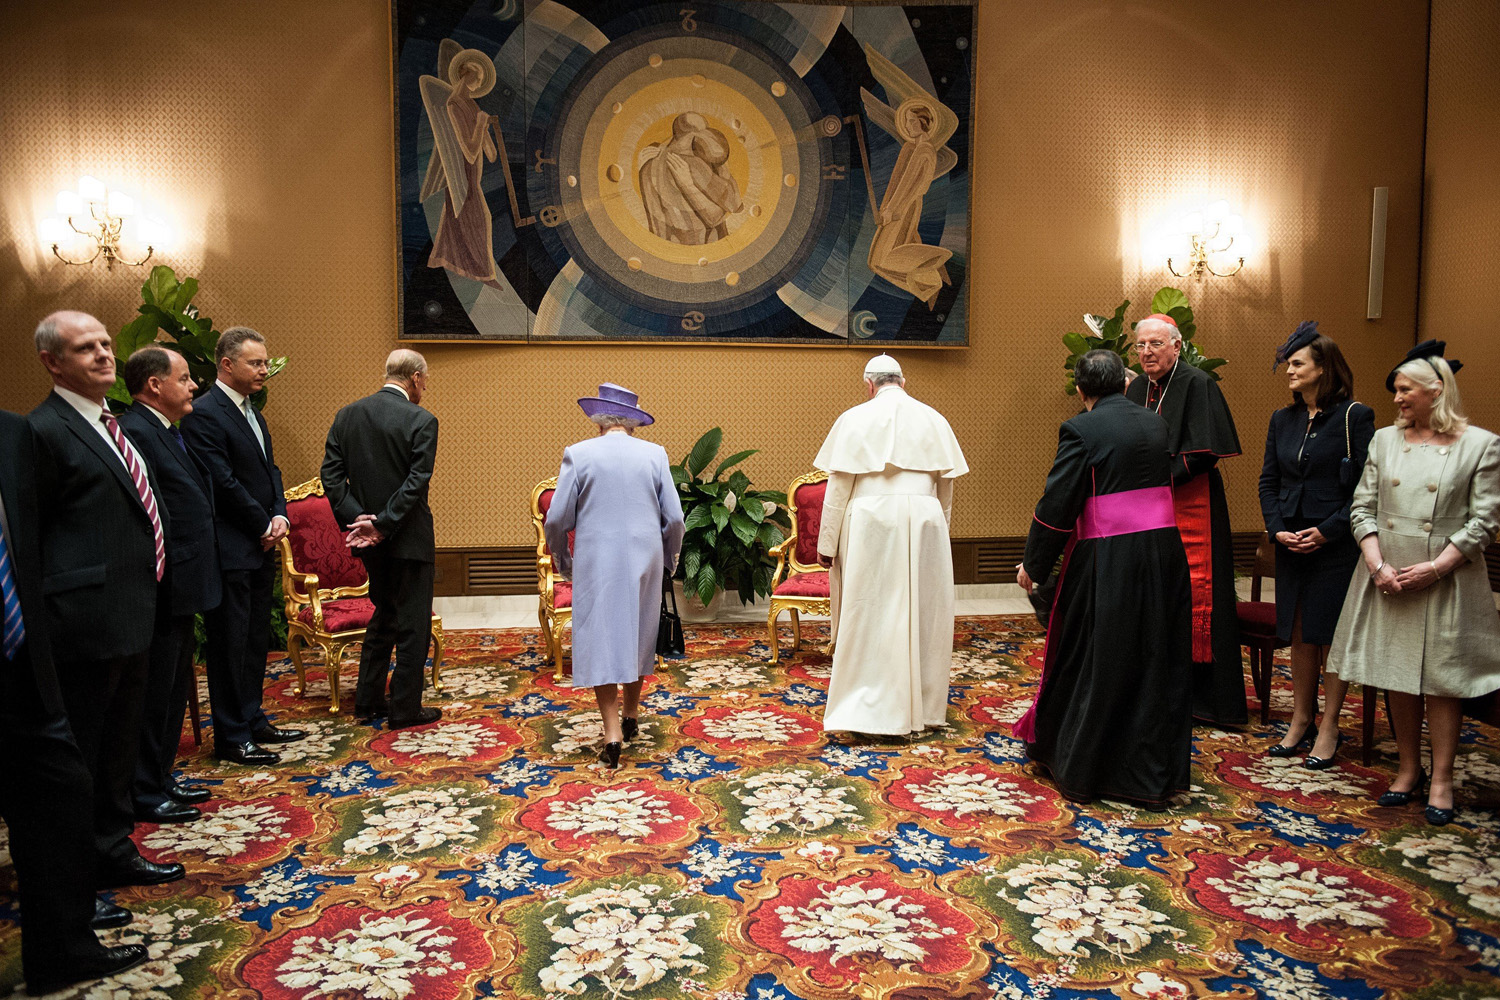 With Queen Elizabeth and Prince Philip at the Vatican.